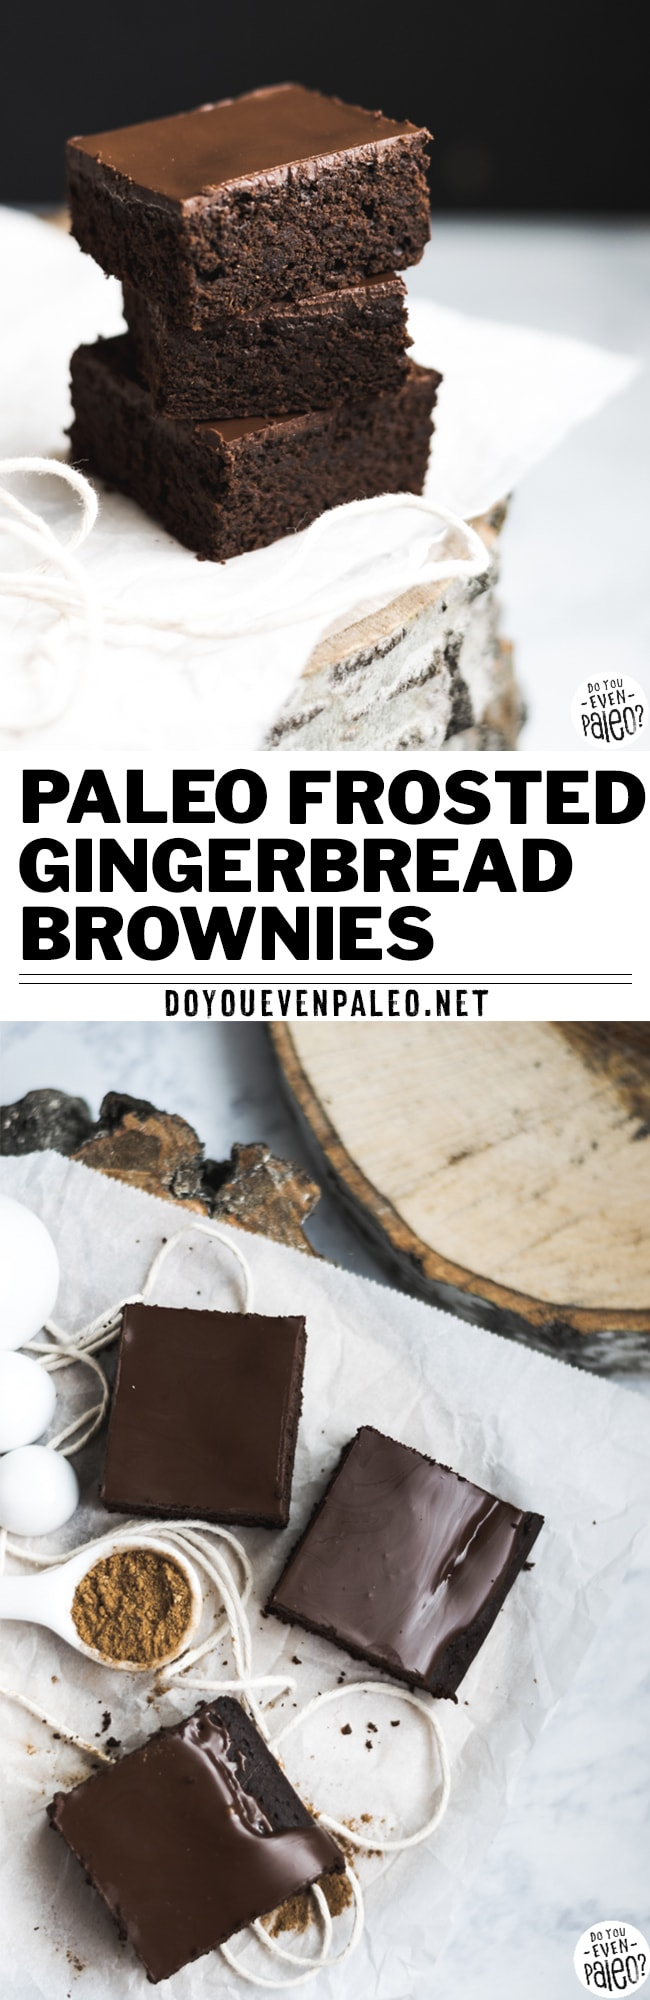 Deep, dark, and rich, these frosted gluten free gingerbread brownies made with cassava flour are the perfect way to indulge a chocolate craving. With molasses and warm gingerbread spices, they have a touch of festive flavor! Paleo, gluten free, vegetarian. | DoYouEvenPaleo.net #paleo #glutenfree